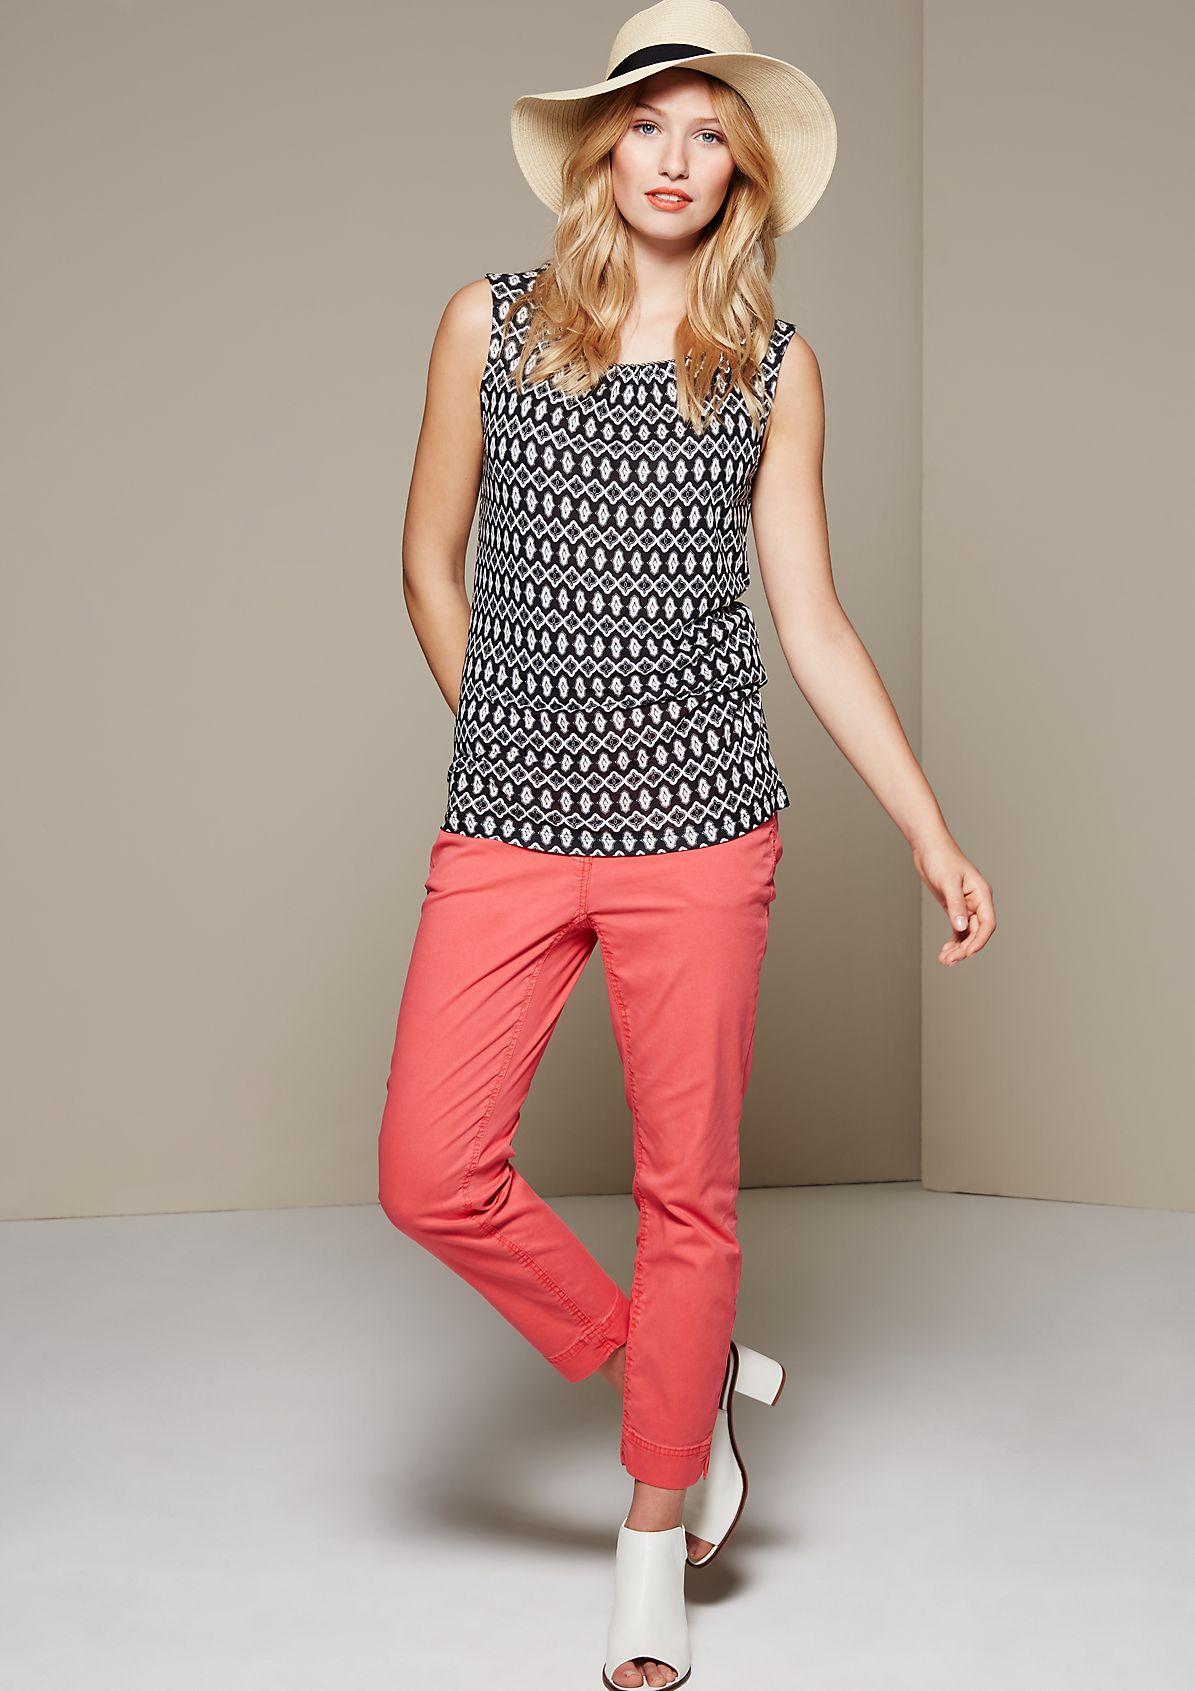 Lightweight summer top with a pretty pattern from s.Oliver